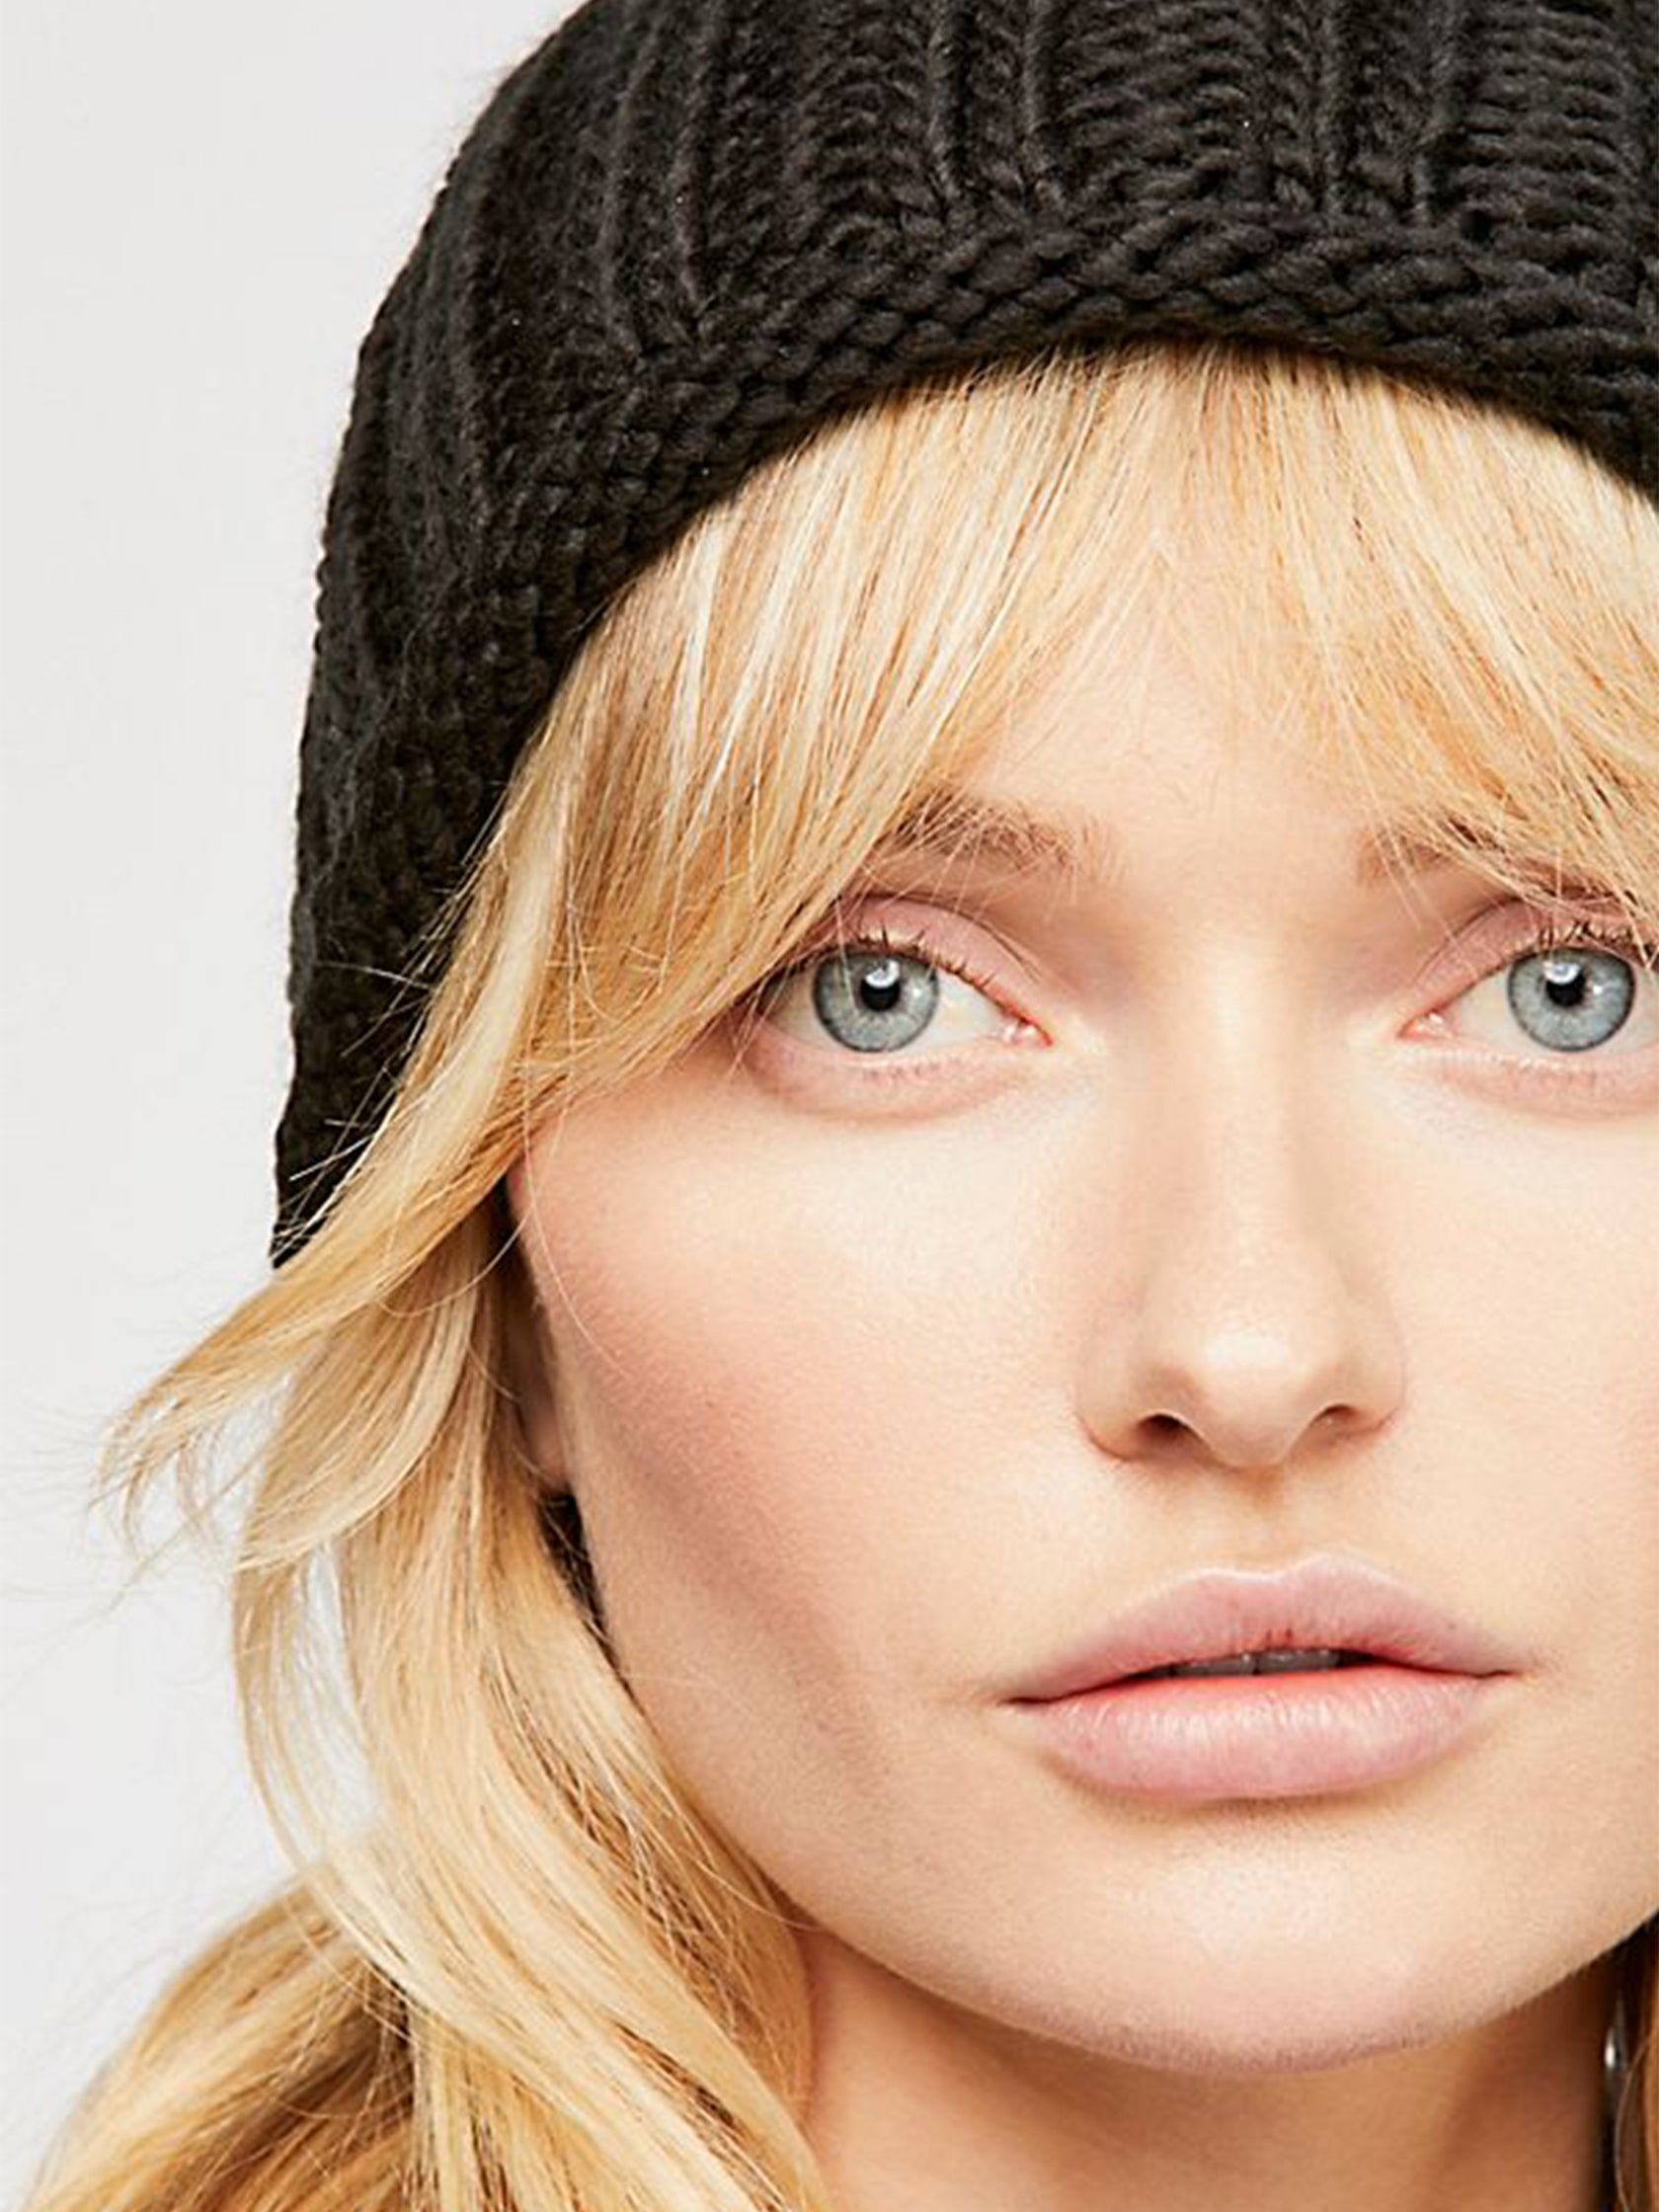 Woman wearing a hat rental from Free People called Rory Rib Knit Beanie